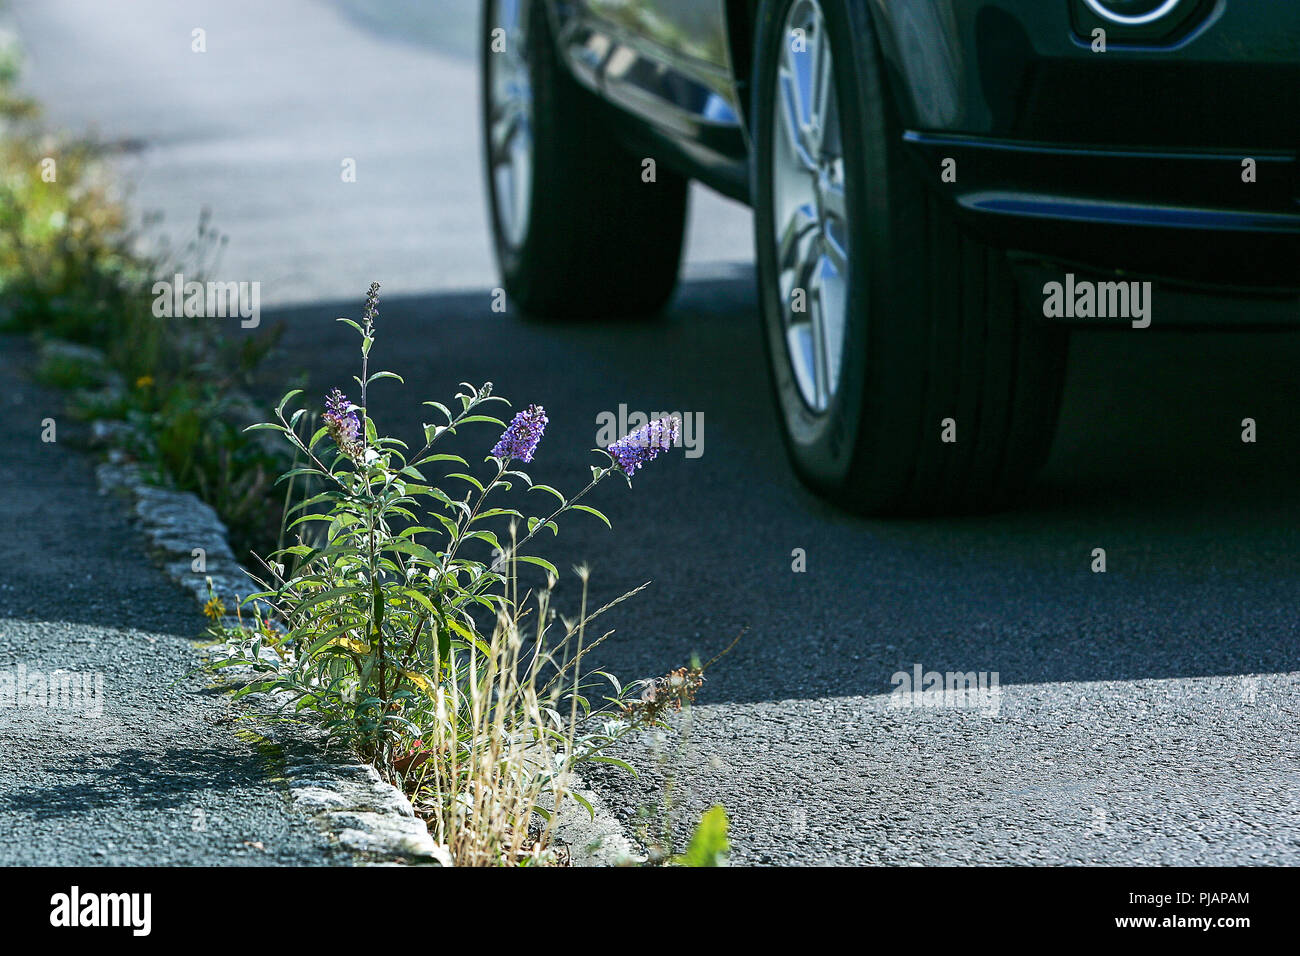 A small purple budleia butterfly bush that's self seeded in a gutter and flourished against the odds despite the cars going past - Stock Image